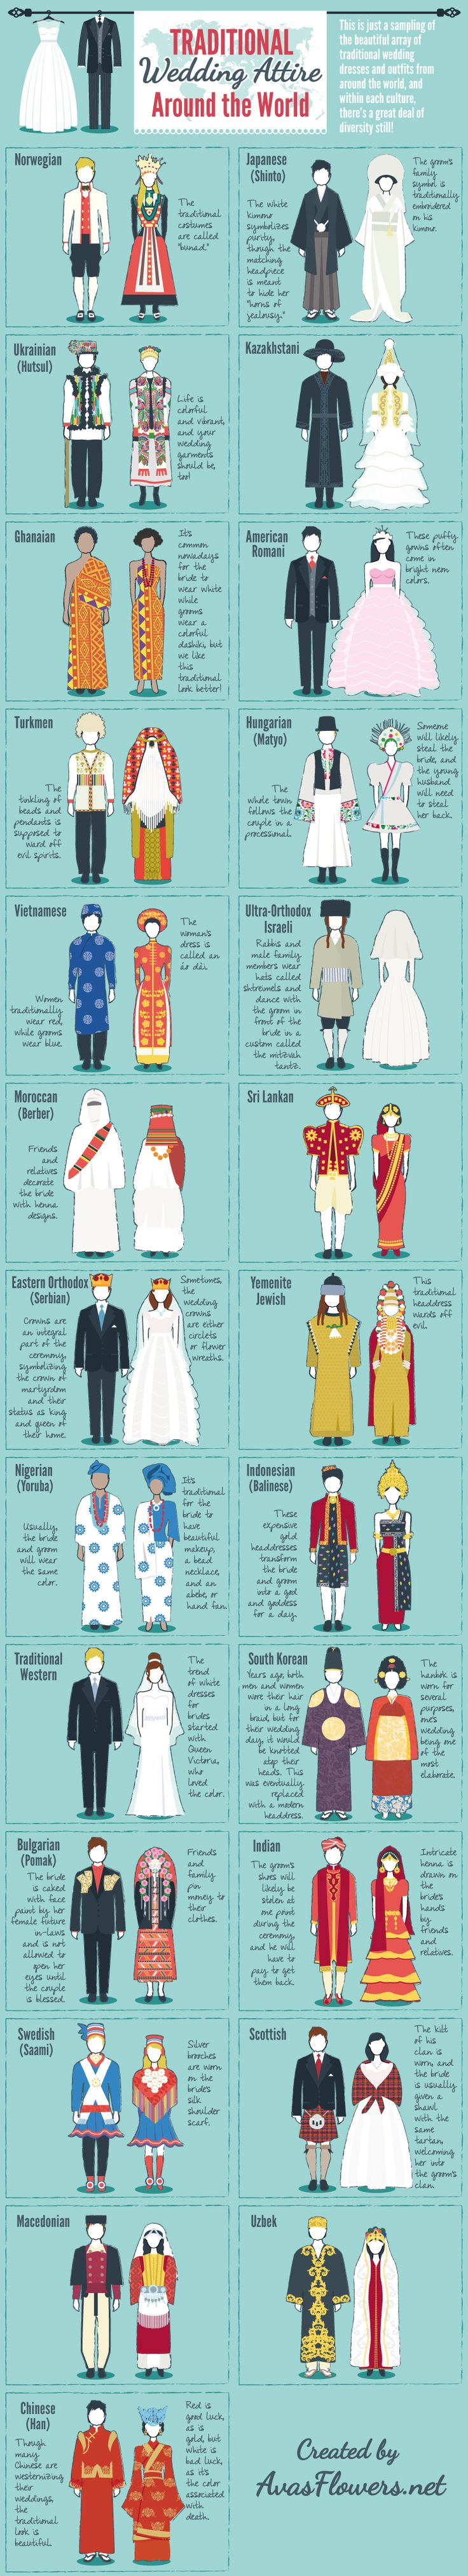 Traditional wedding attire around the world [INFOGRAPHIC] - Matador Network